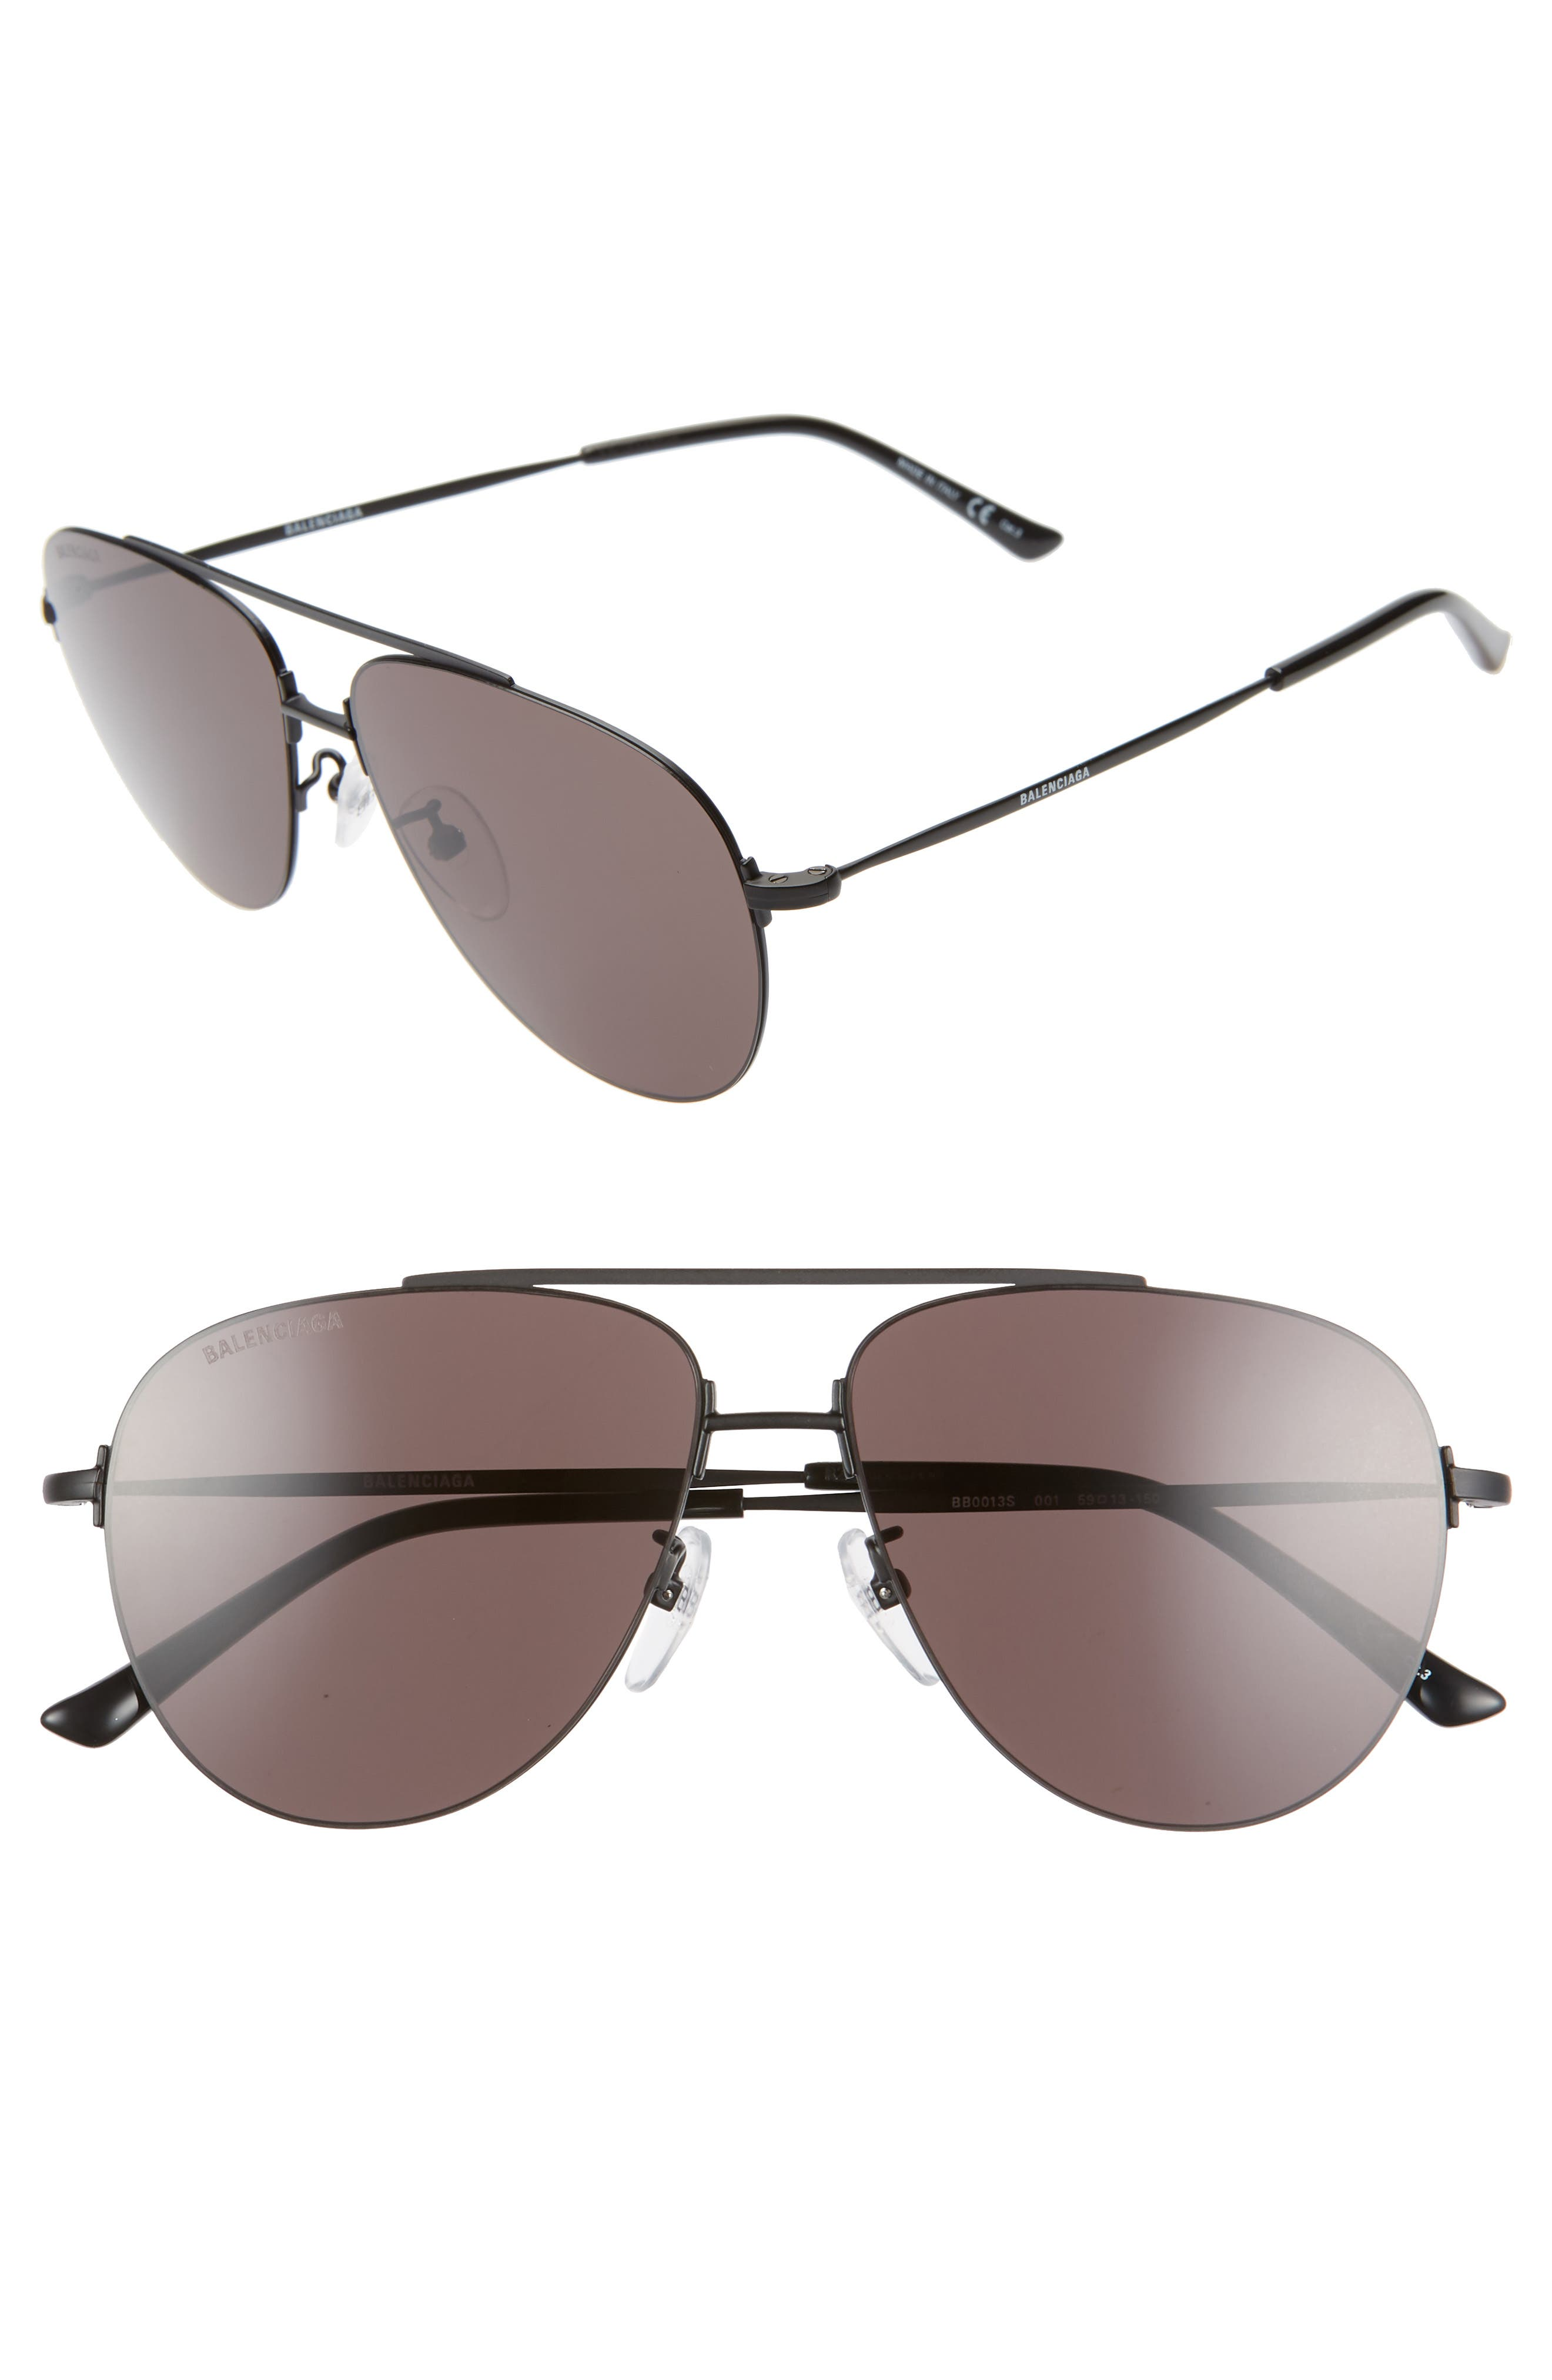 BALENCIAGA, 59mm Aviator Sunglasses, Main thumbnail 1, color, SEMI-MATTE BLACK/ GREY